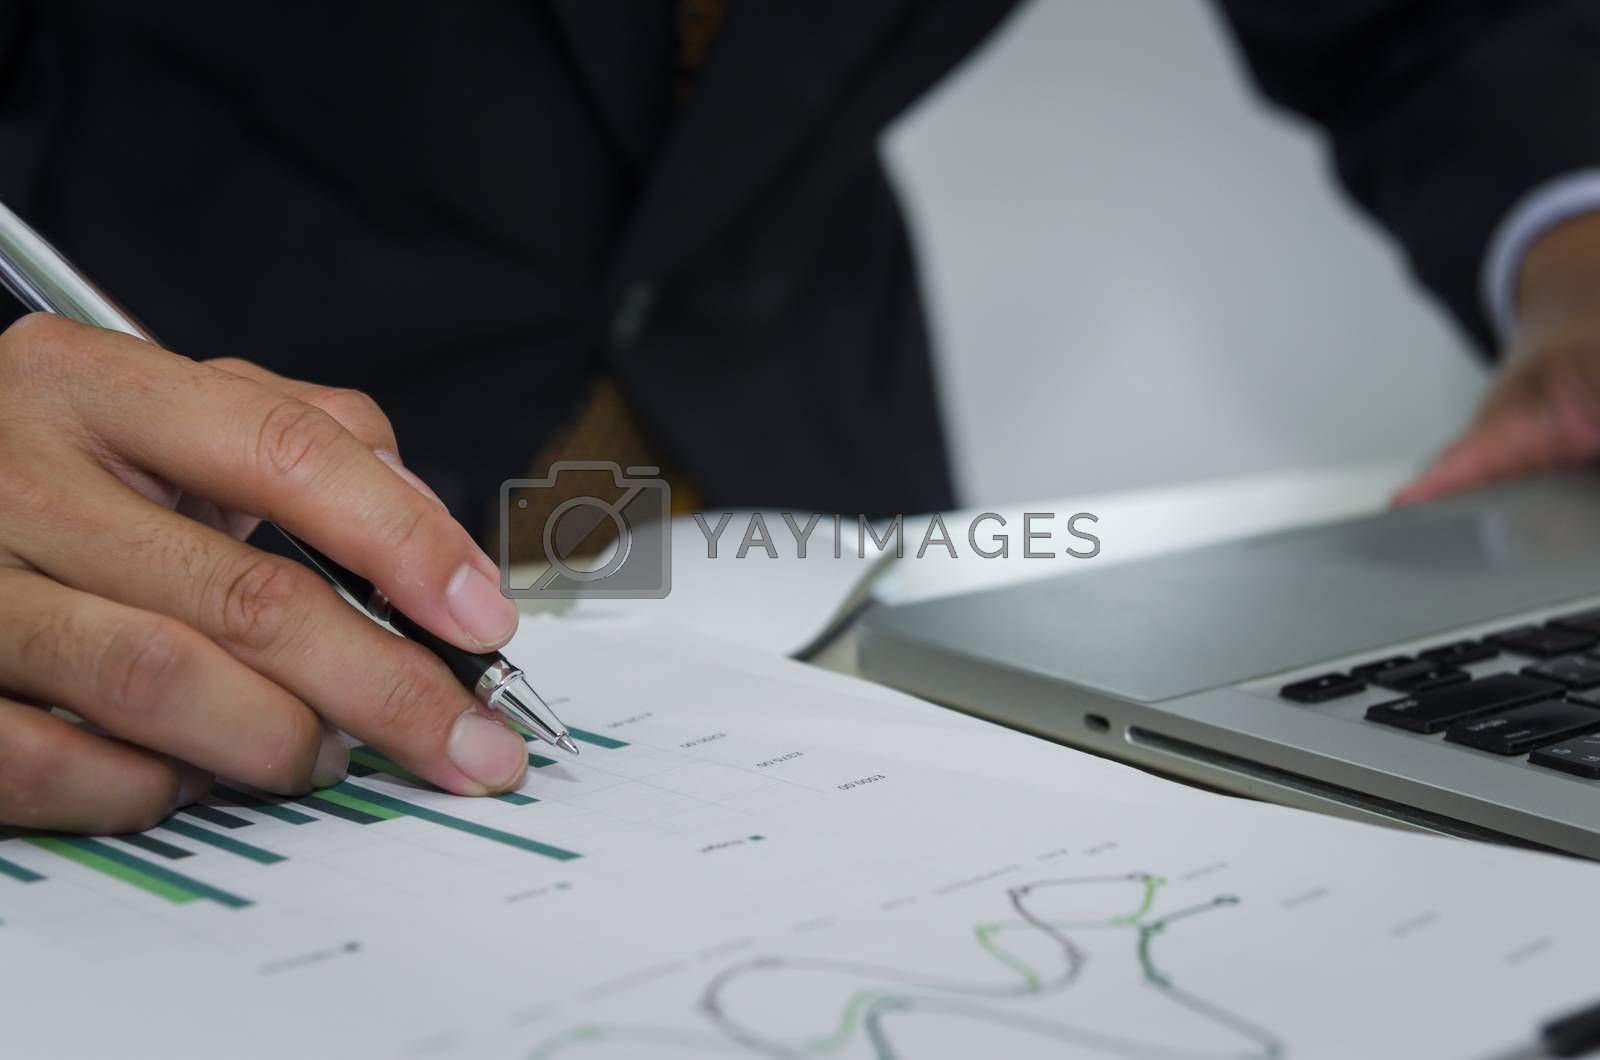 Business man holding a pen, business documents, reports, graphs and charts of financial statements and profit growth